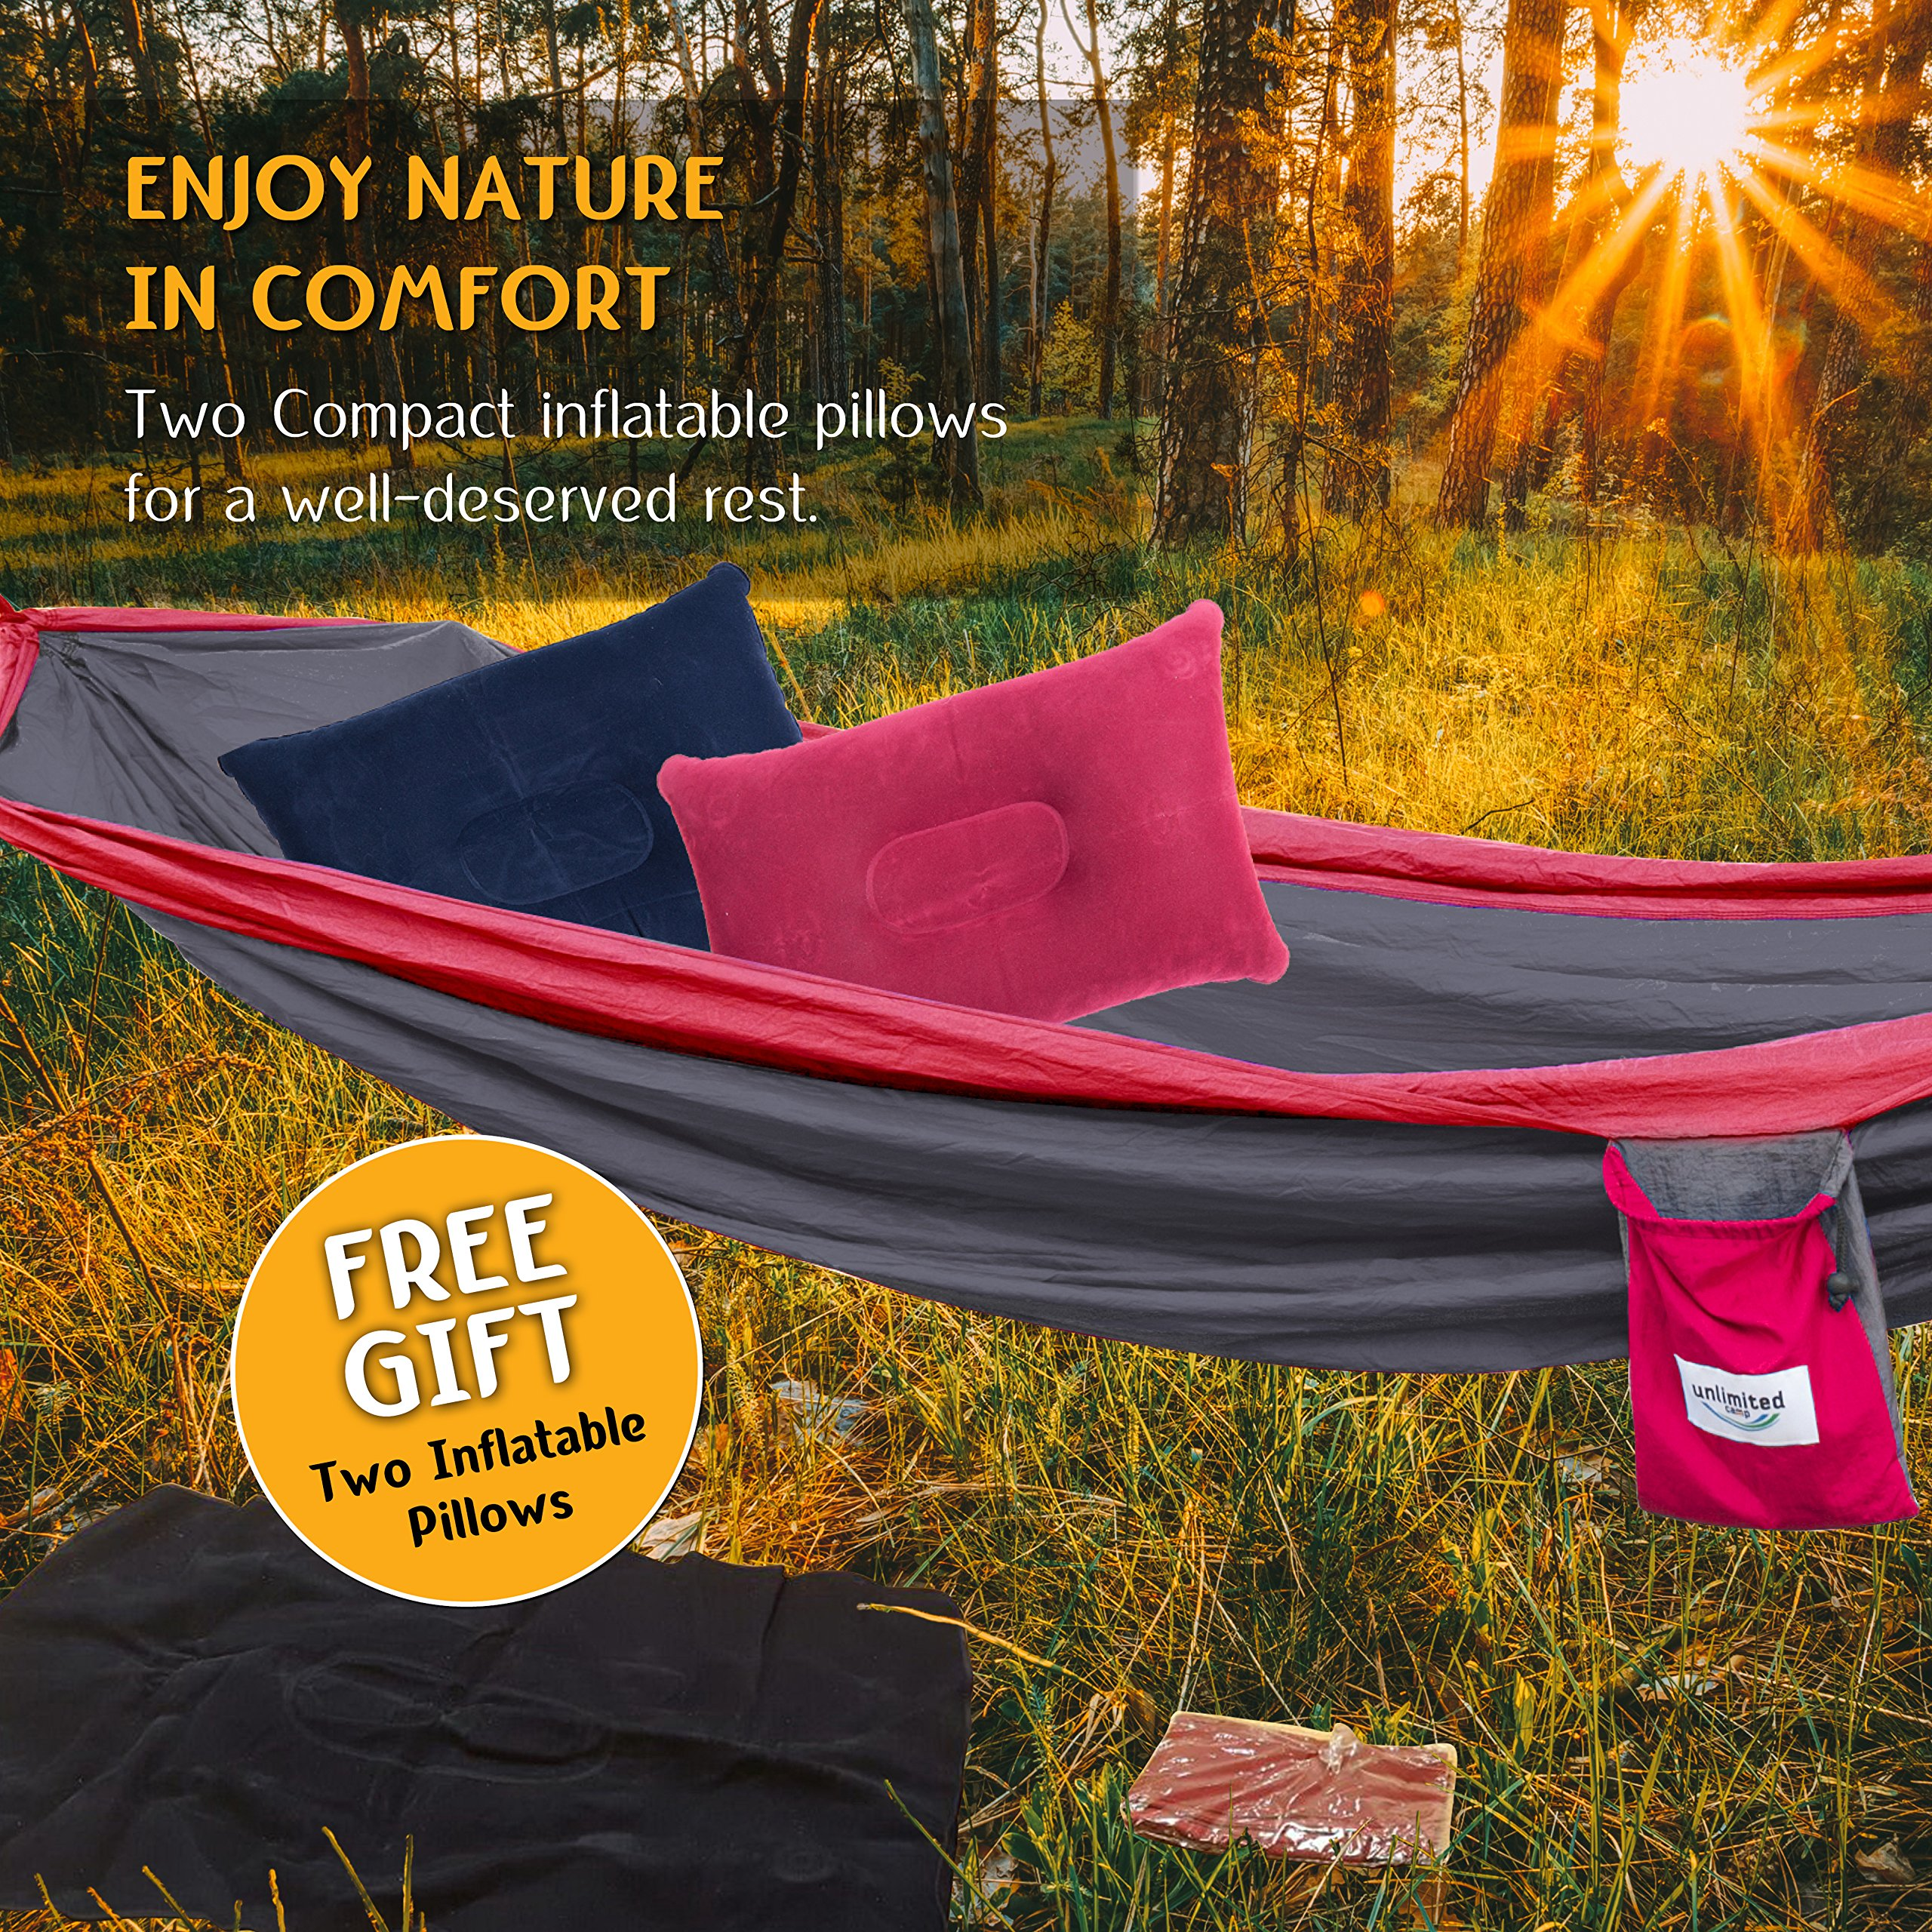 Double Camping Hammock by Unlimited Camp: 3 Seam Nylon Portable Lightweight Bedding for Camping, Hiking, Beach, or Yard plus Free Pillows, Ropes, and Special Straps